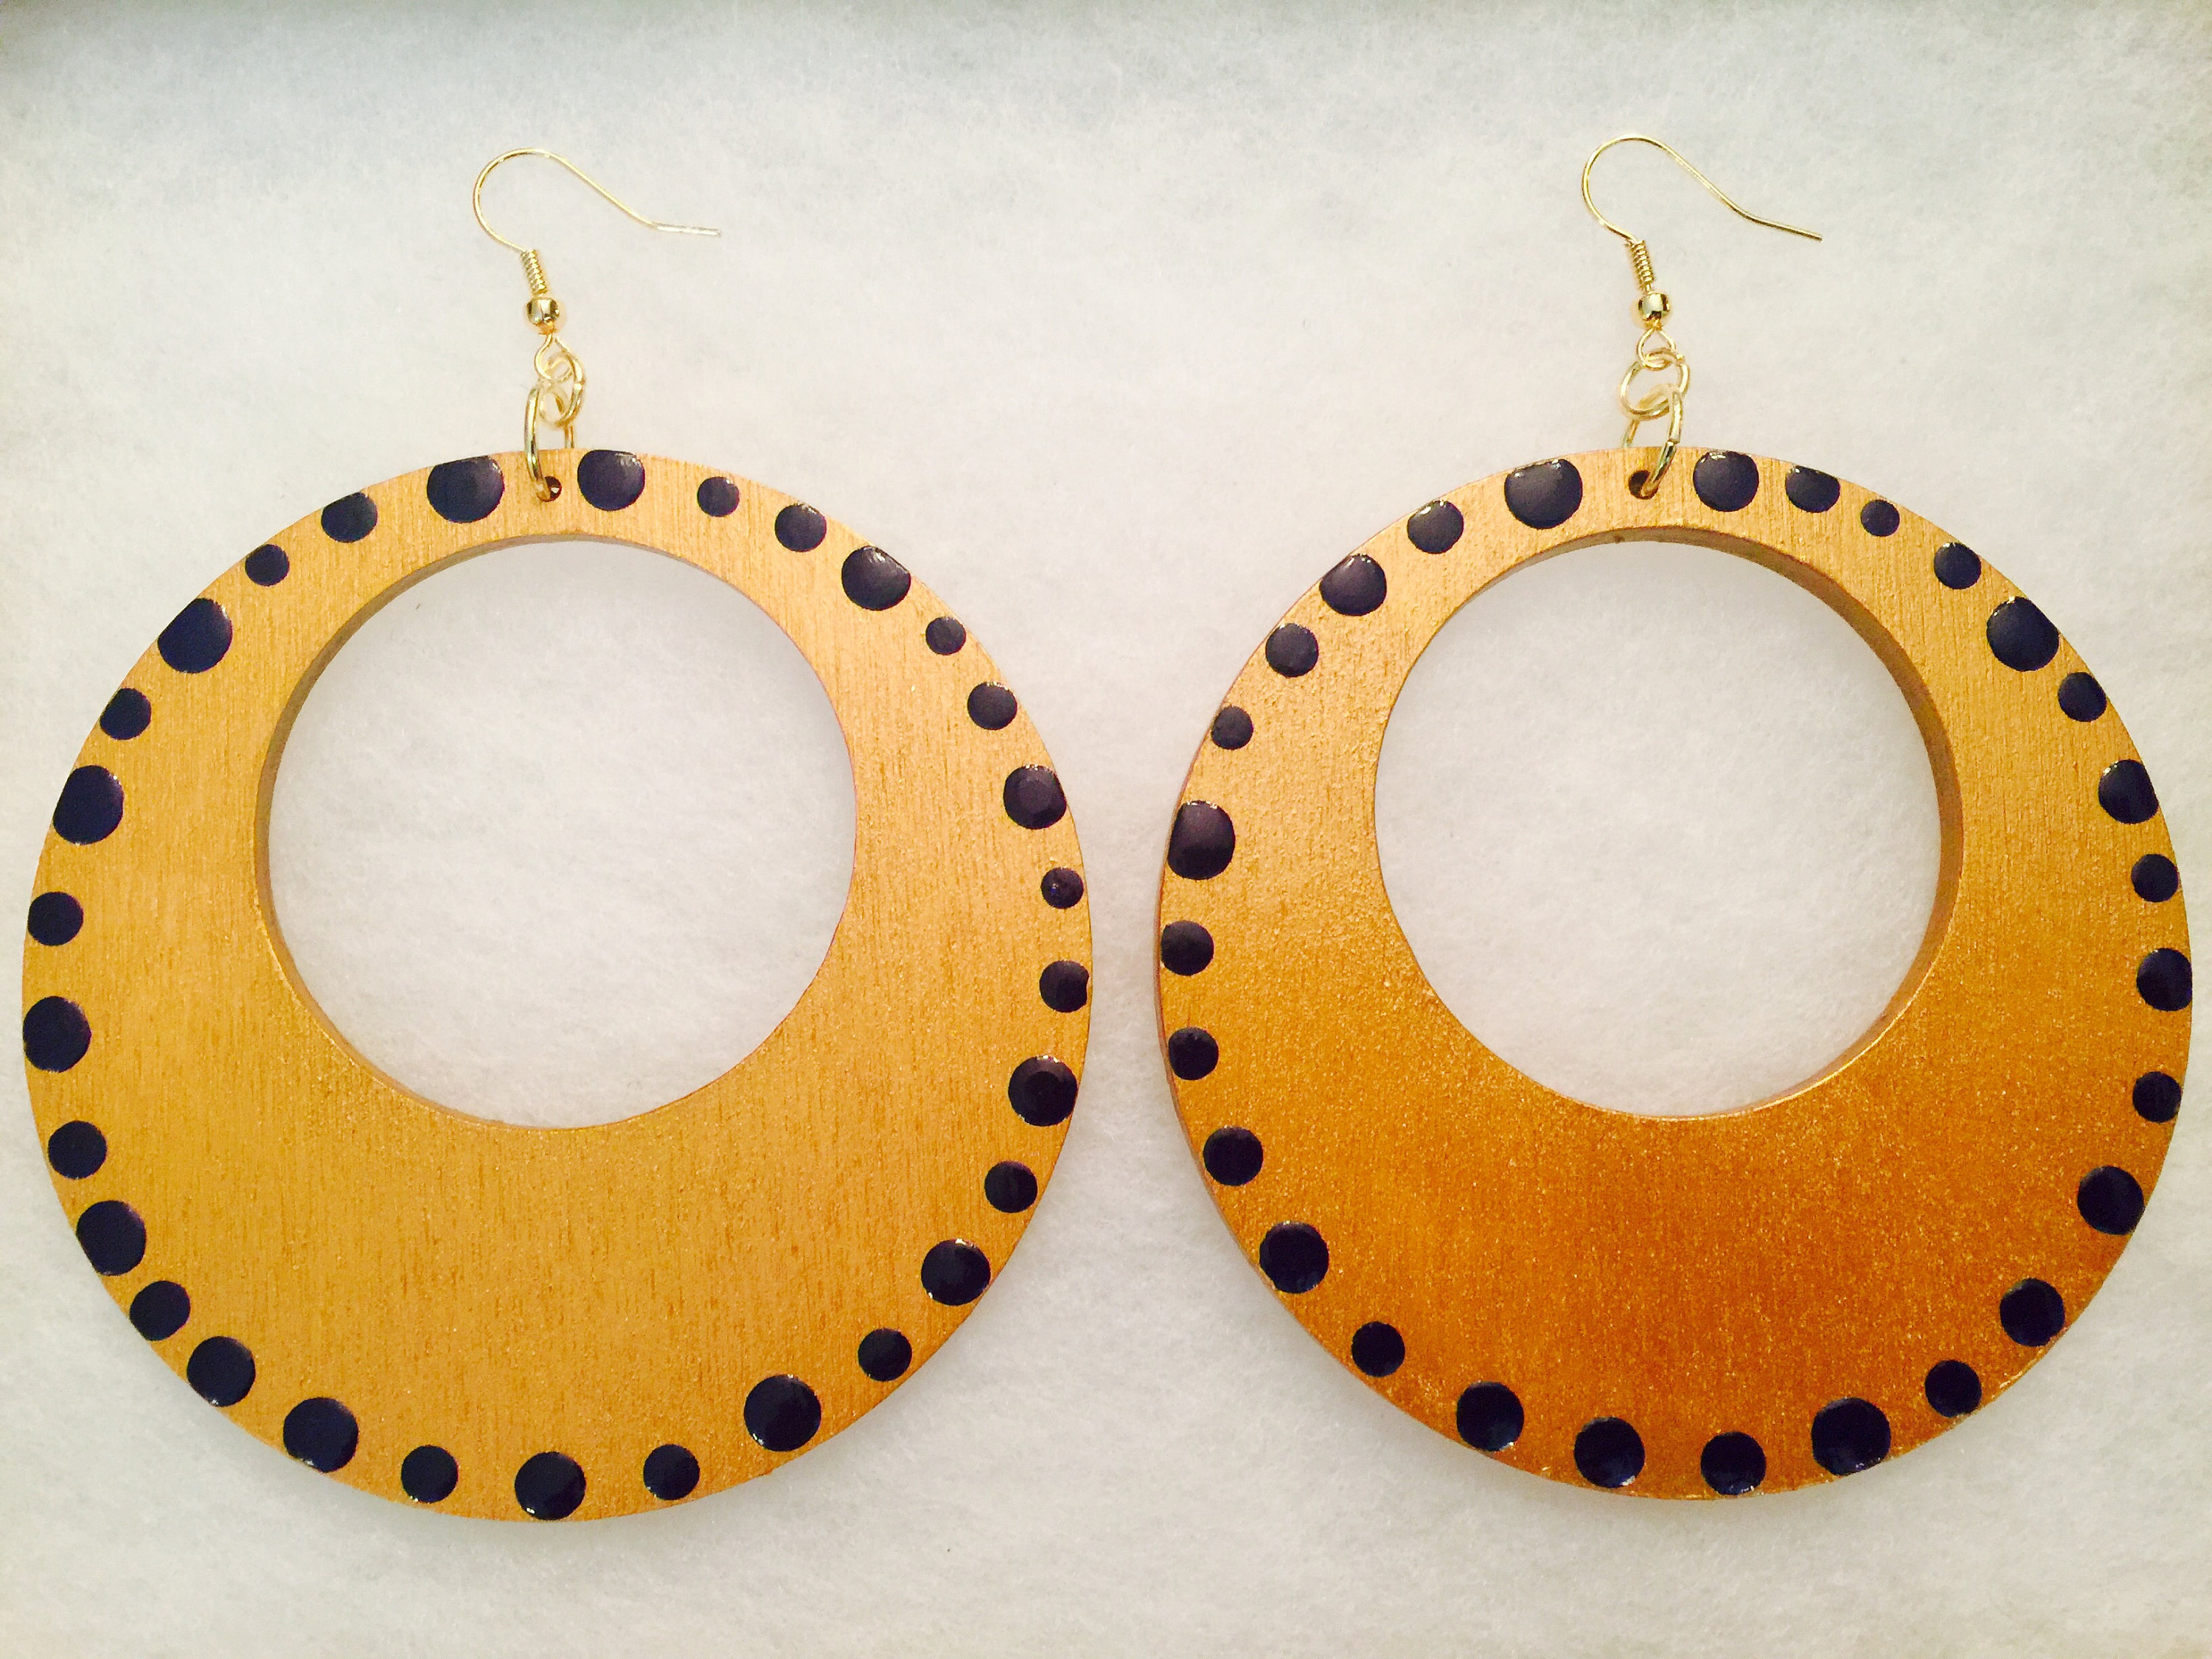 allergenic painted steel earrings hand button listing il surgical fullxfull covered hypo stud fabric